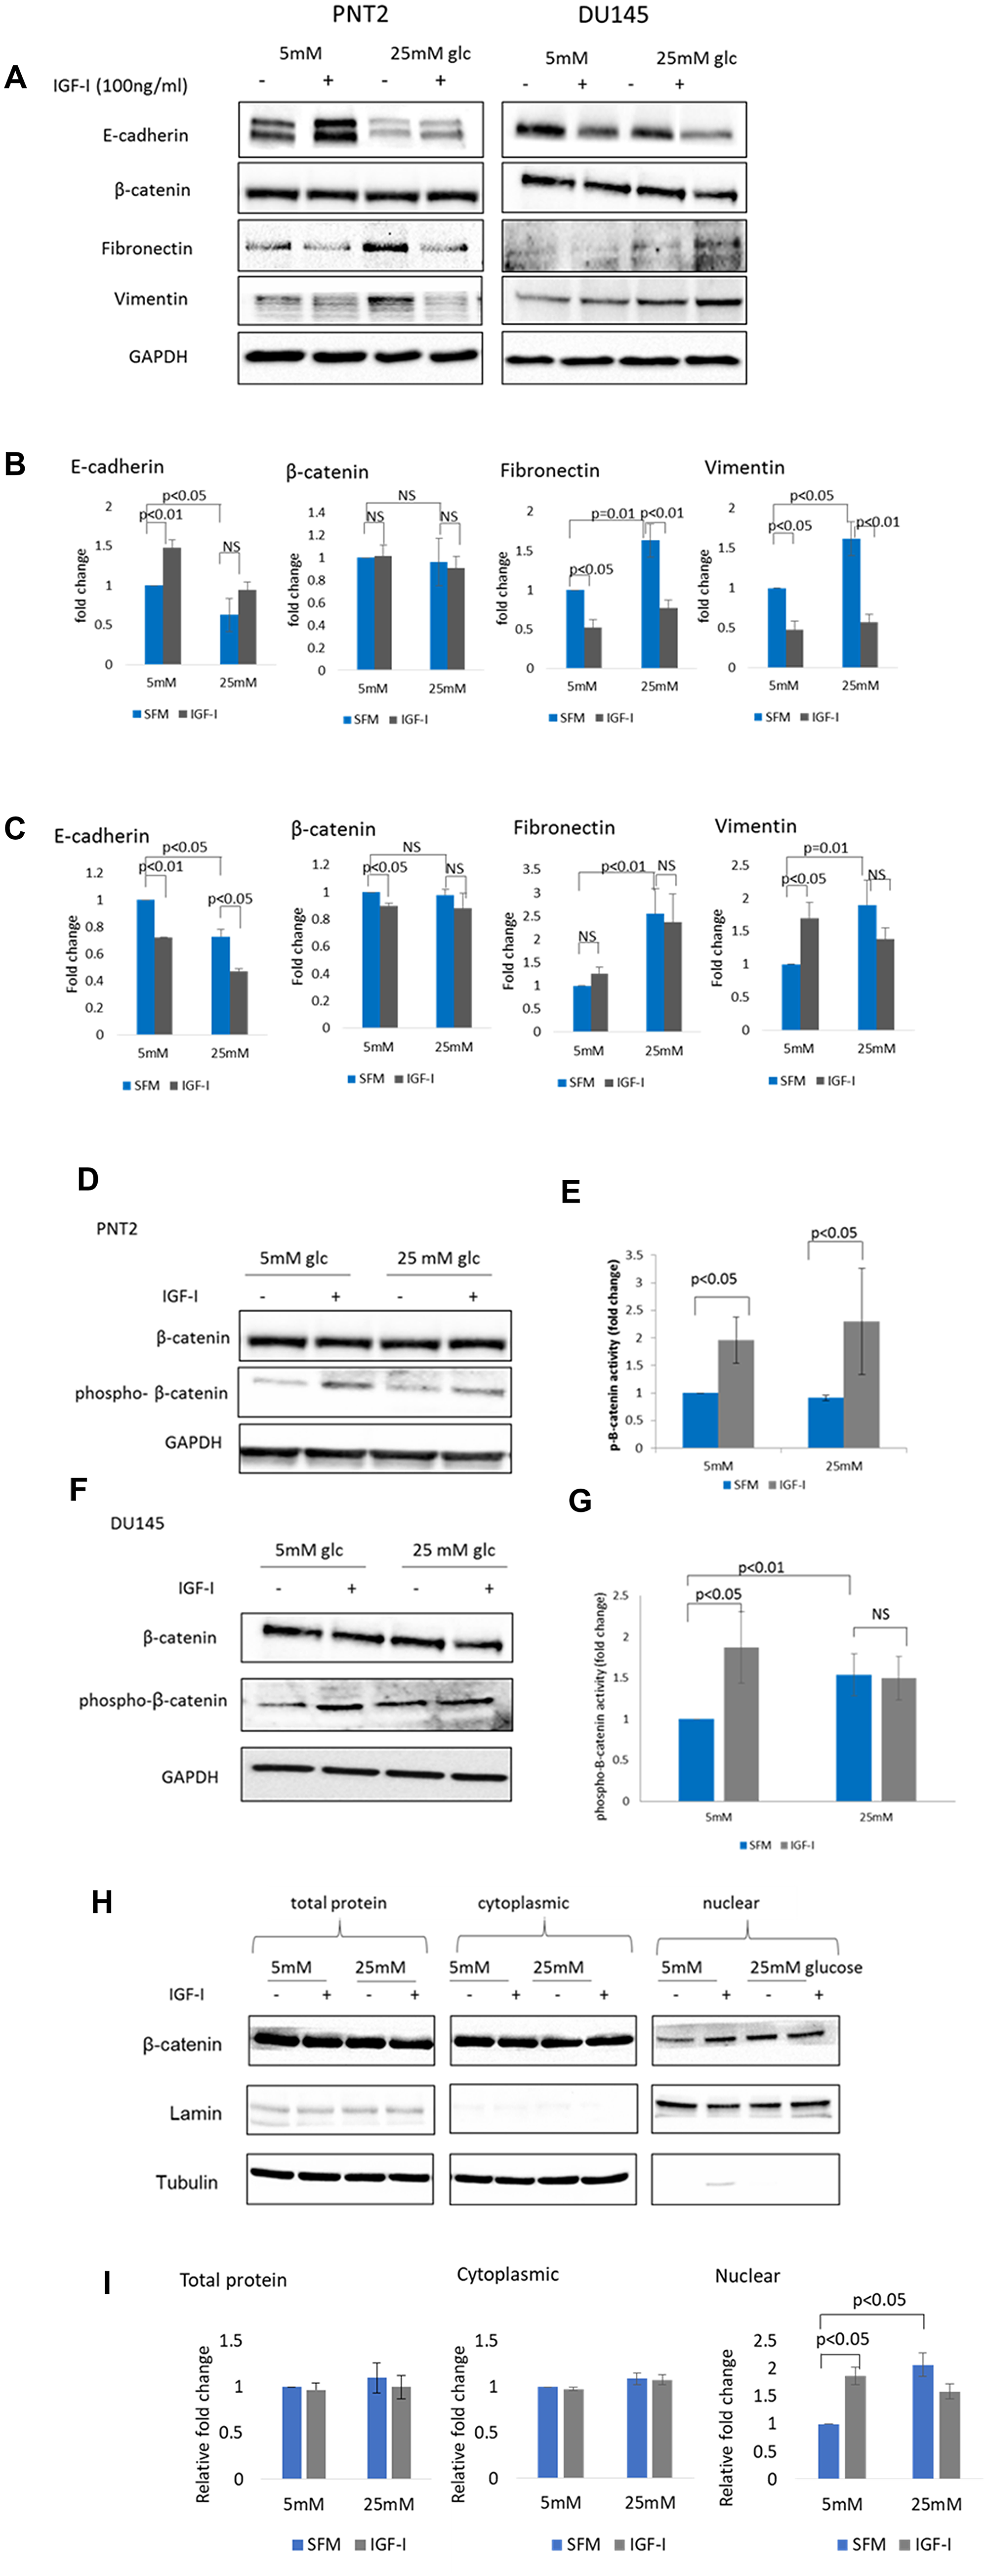 The effect of IGF-I on EMT markers in prostate epithelial cells in altered glucose condition.